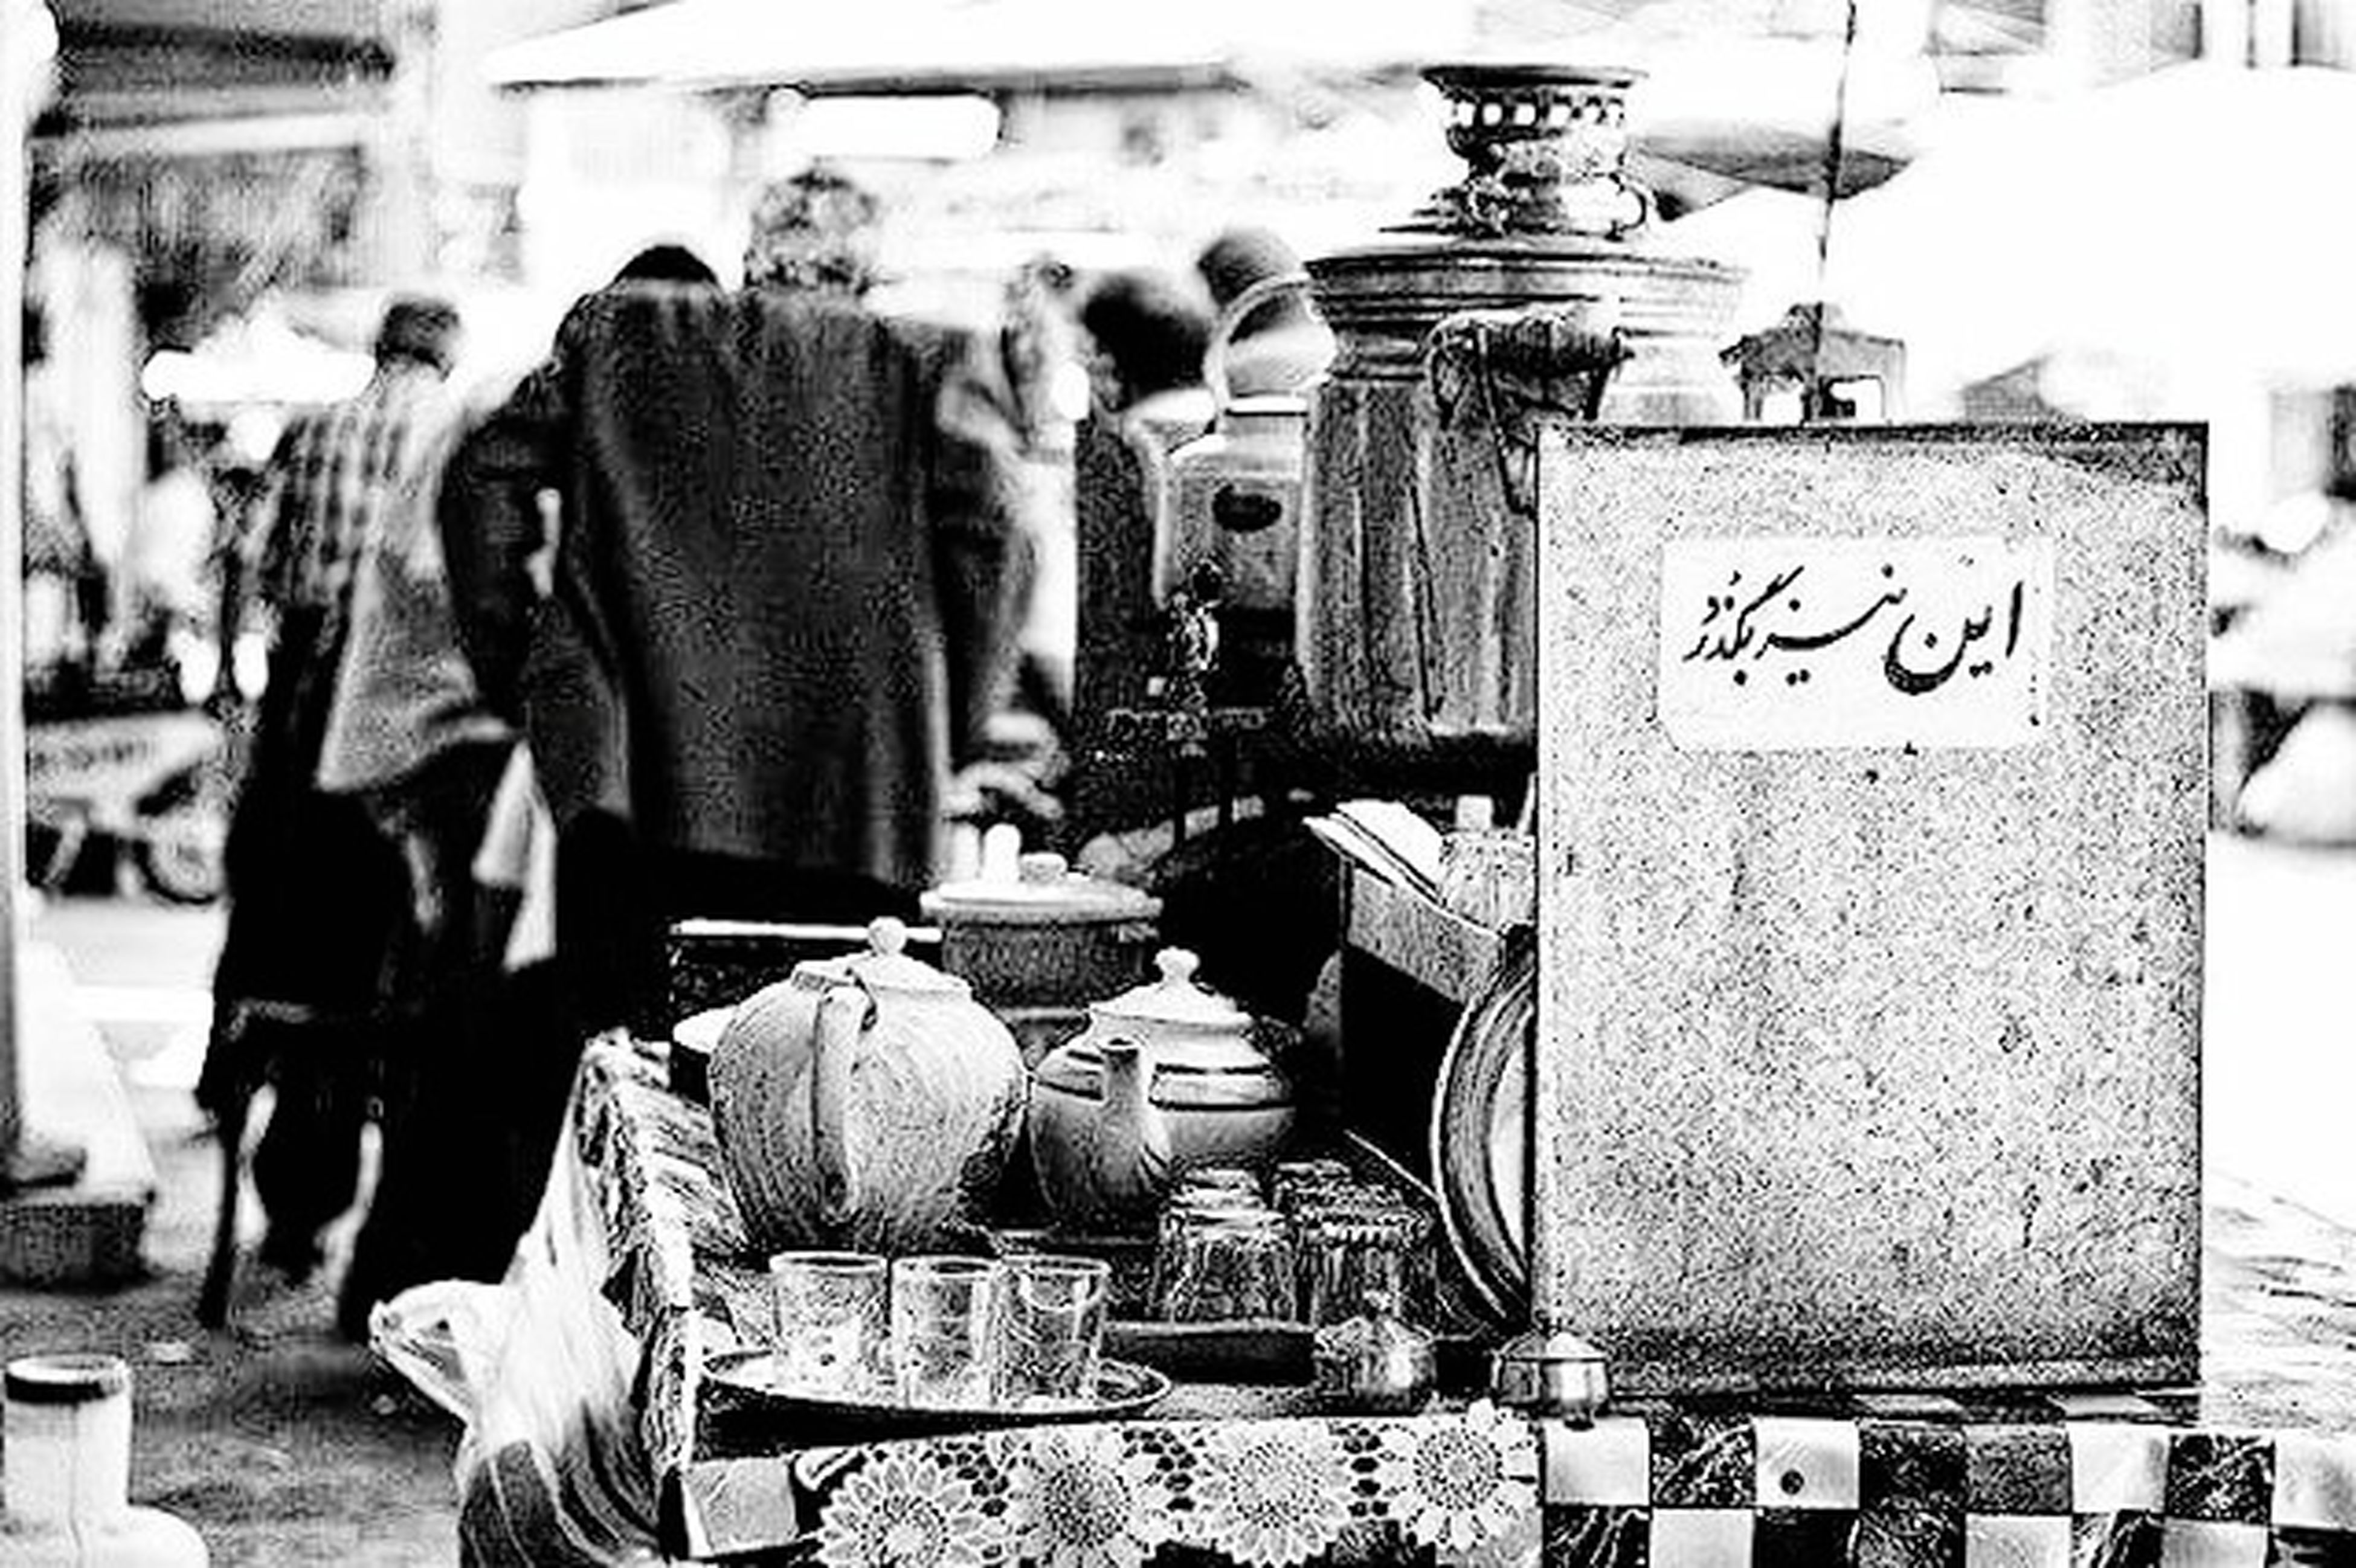 retail, for sale, market, focus on foreground, market stall, store, shop, text, incidental people, display, religion, sale, small business, men, non-western script, choice, street, consumerism, variation